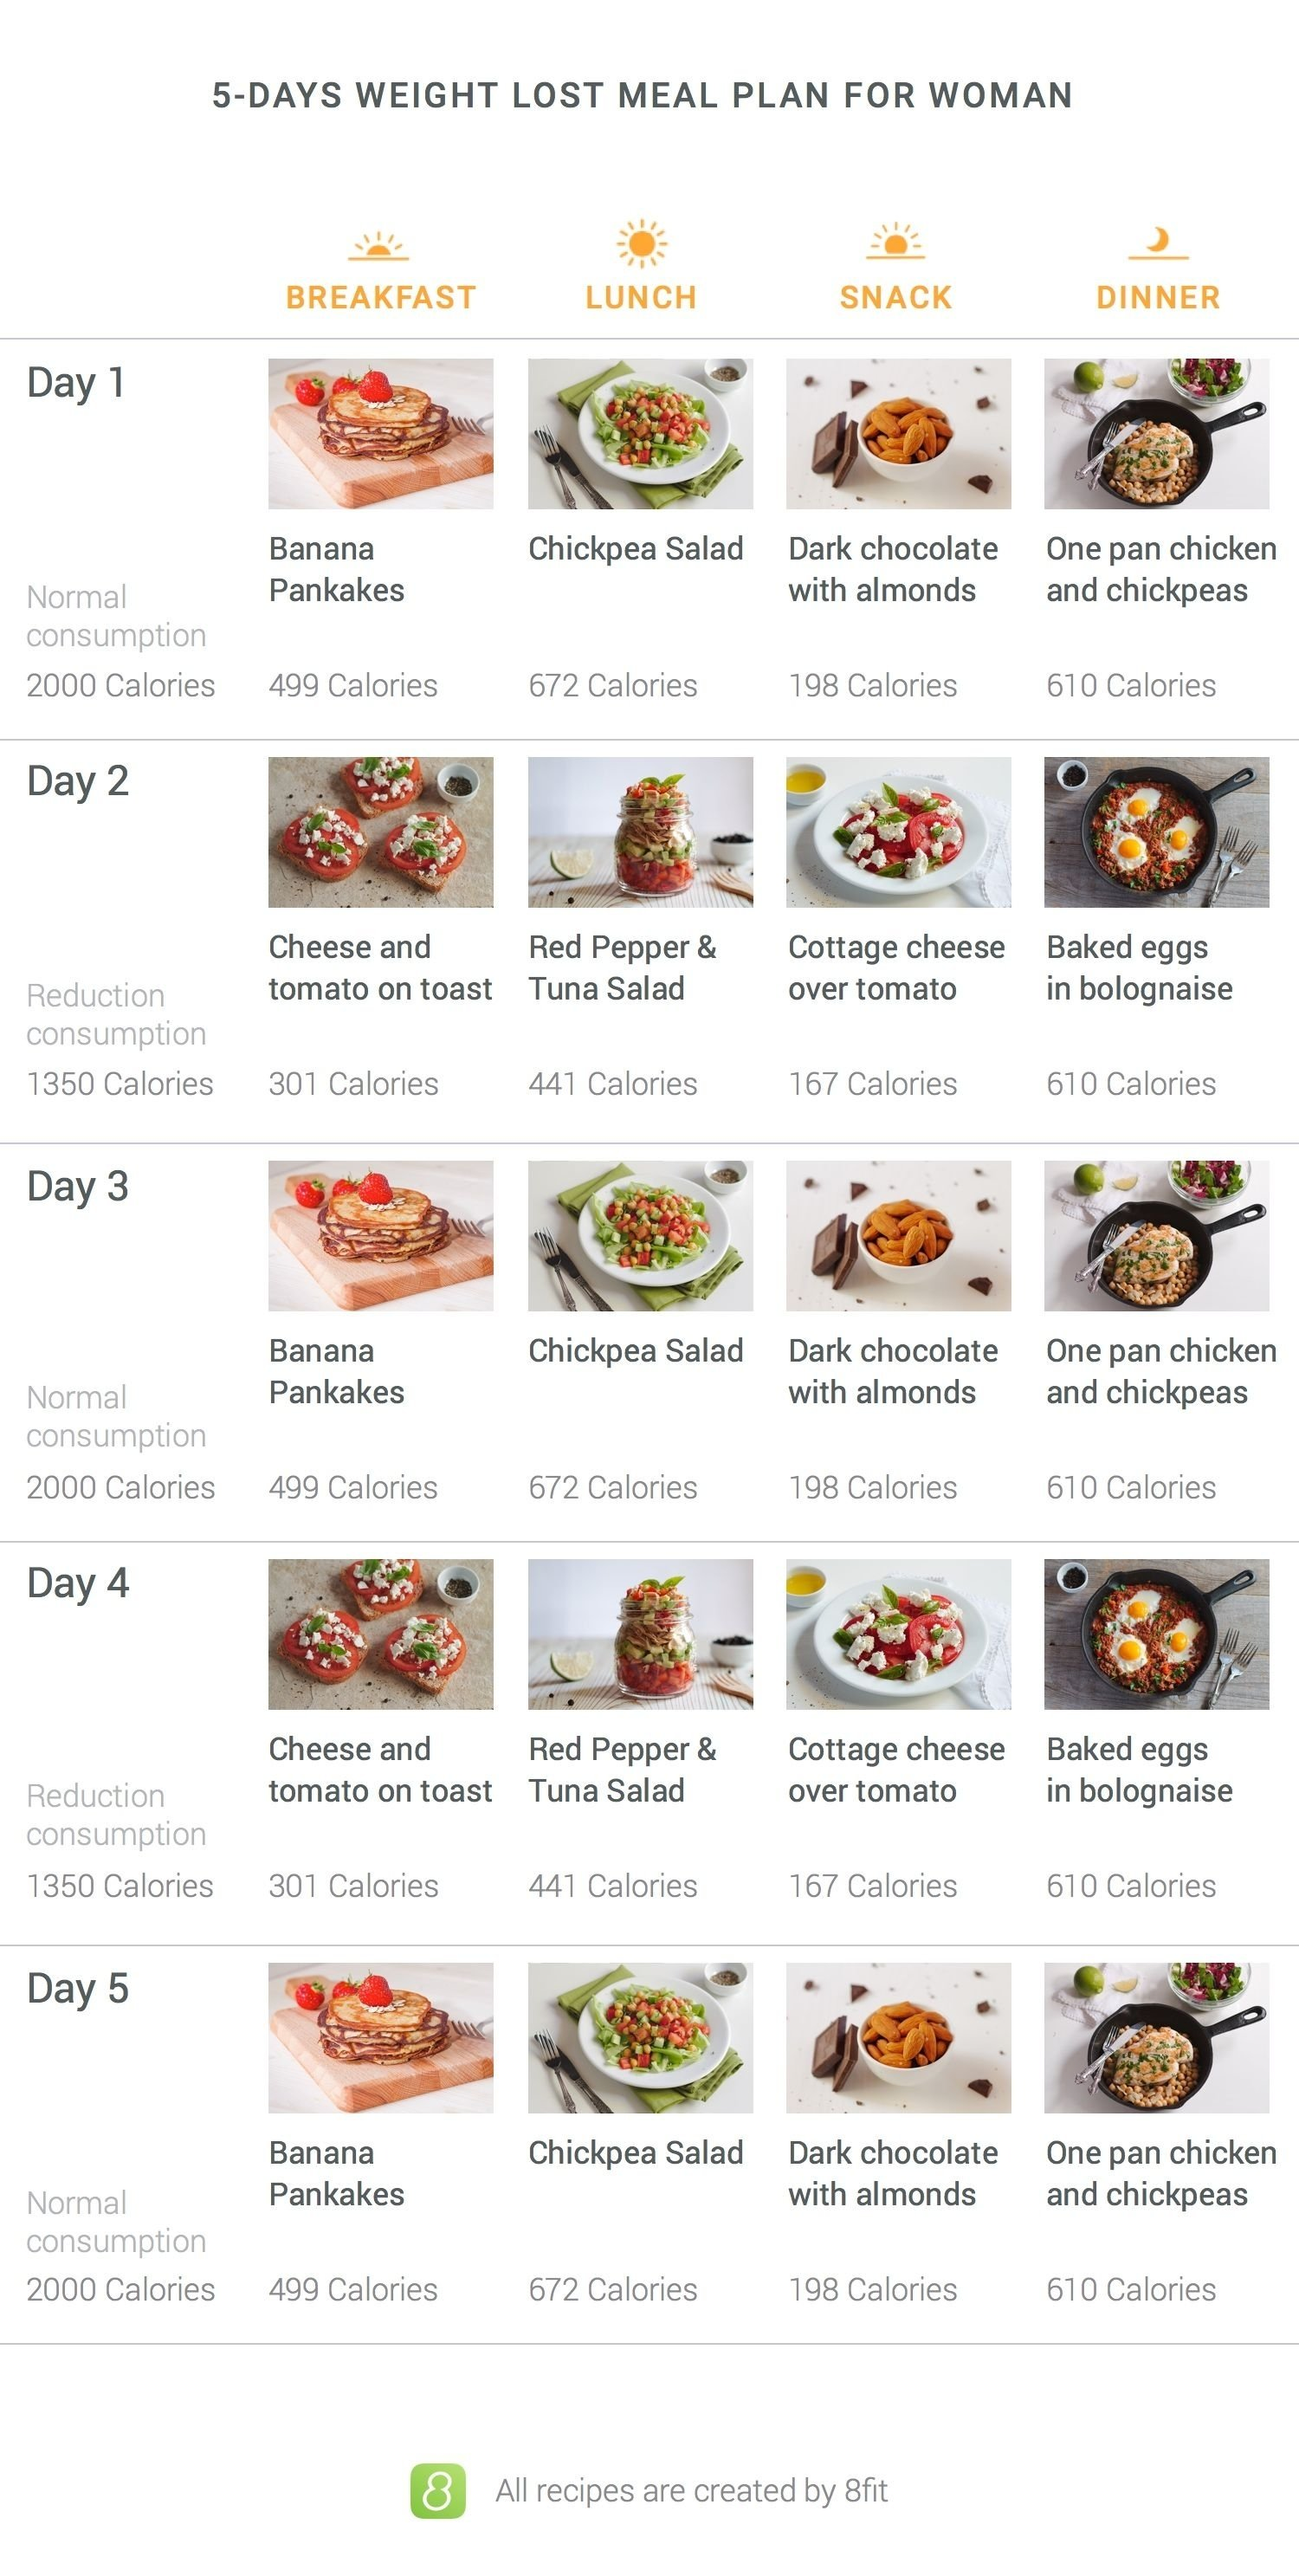 10 Fantastic Diet Ideas For Weight Loss skip the gym do this 10 minute workout instead lost weight 1 2020